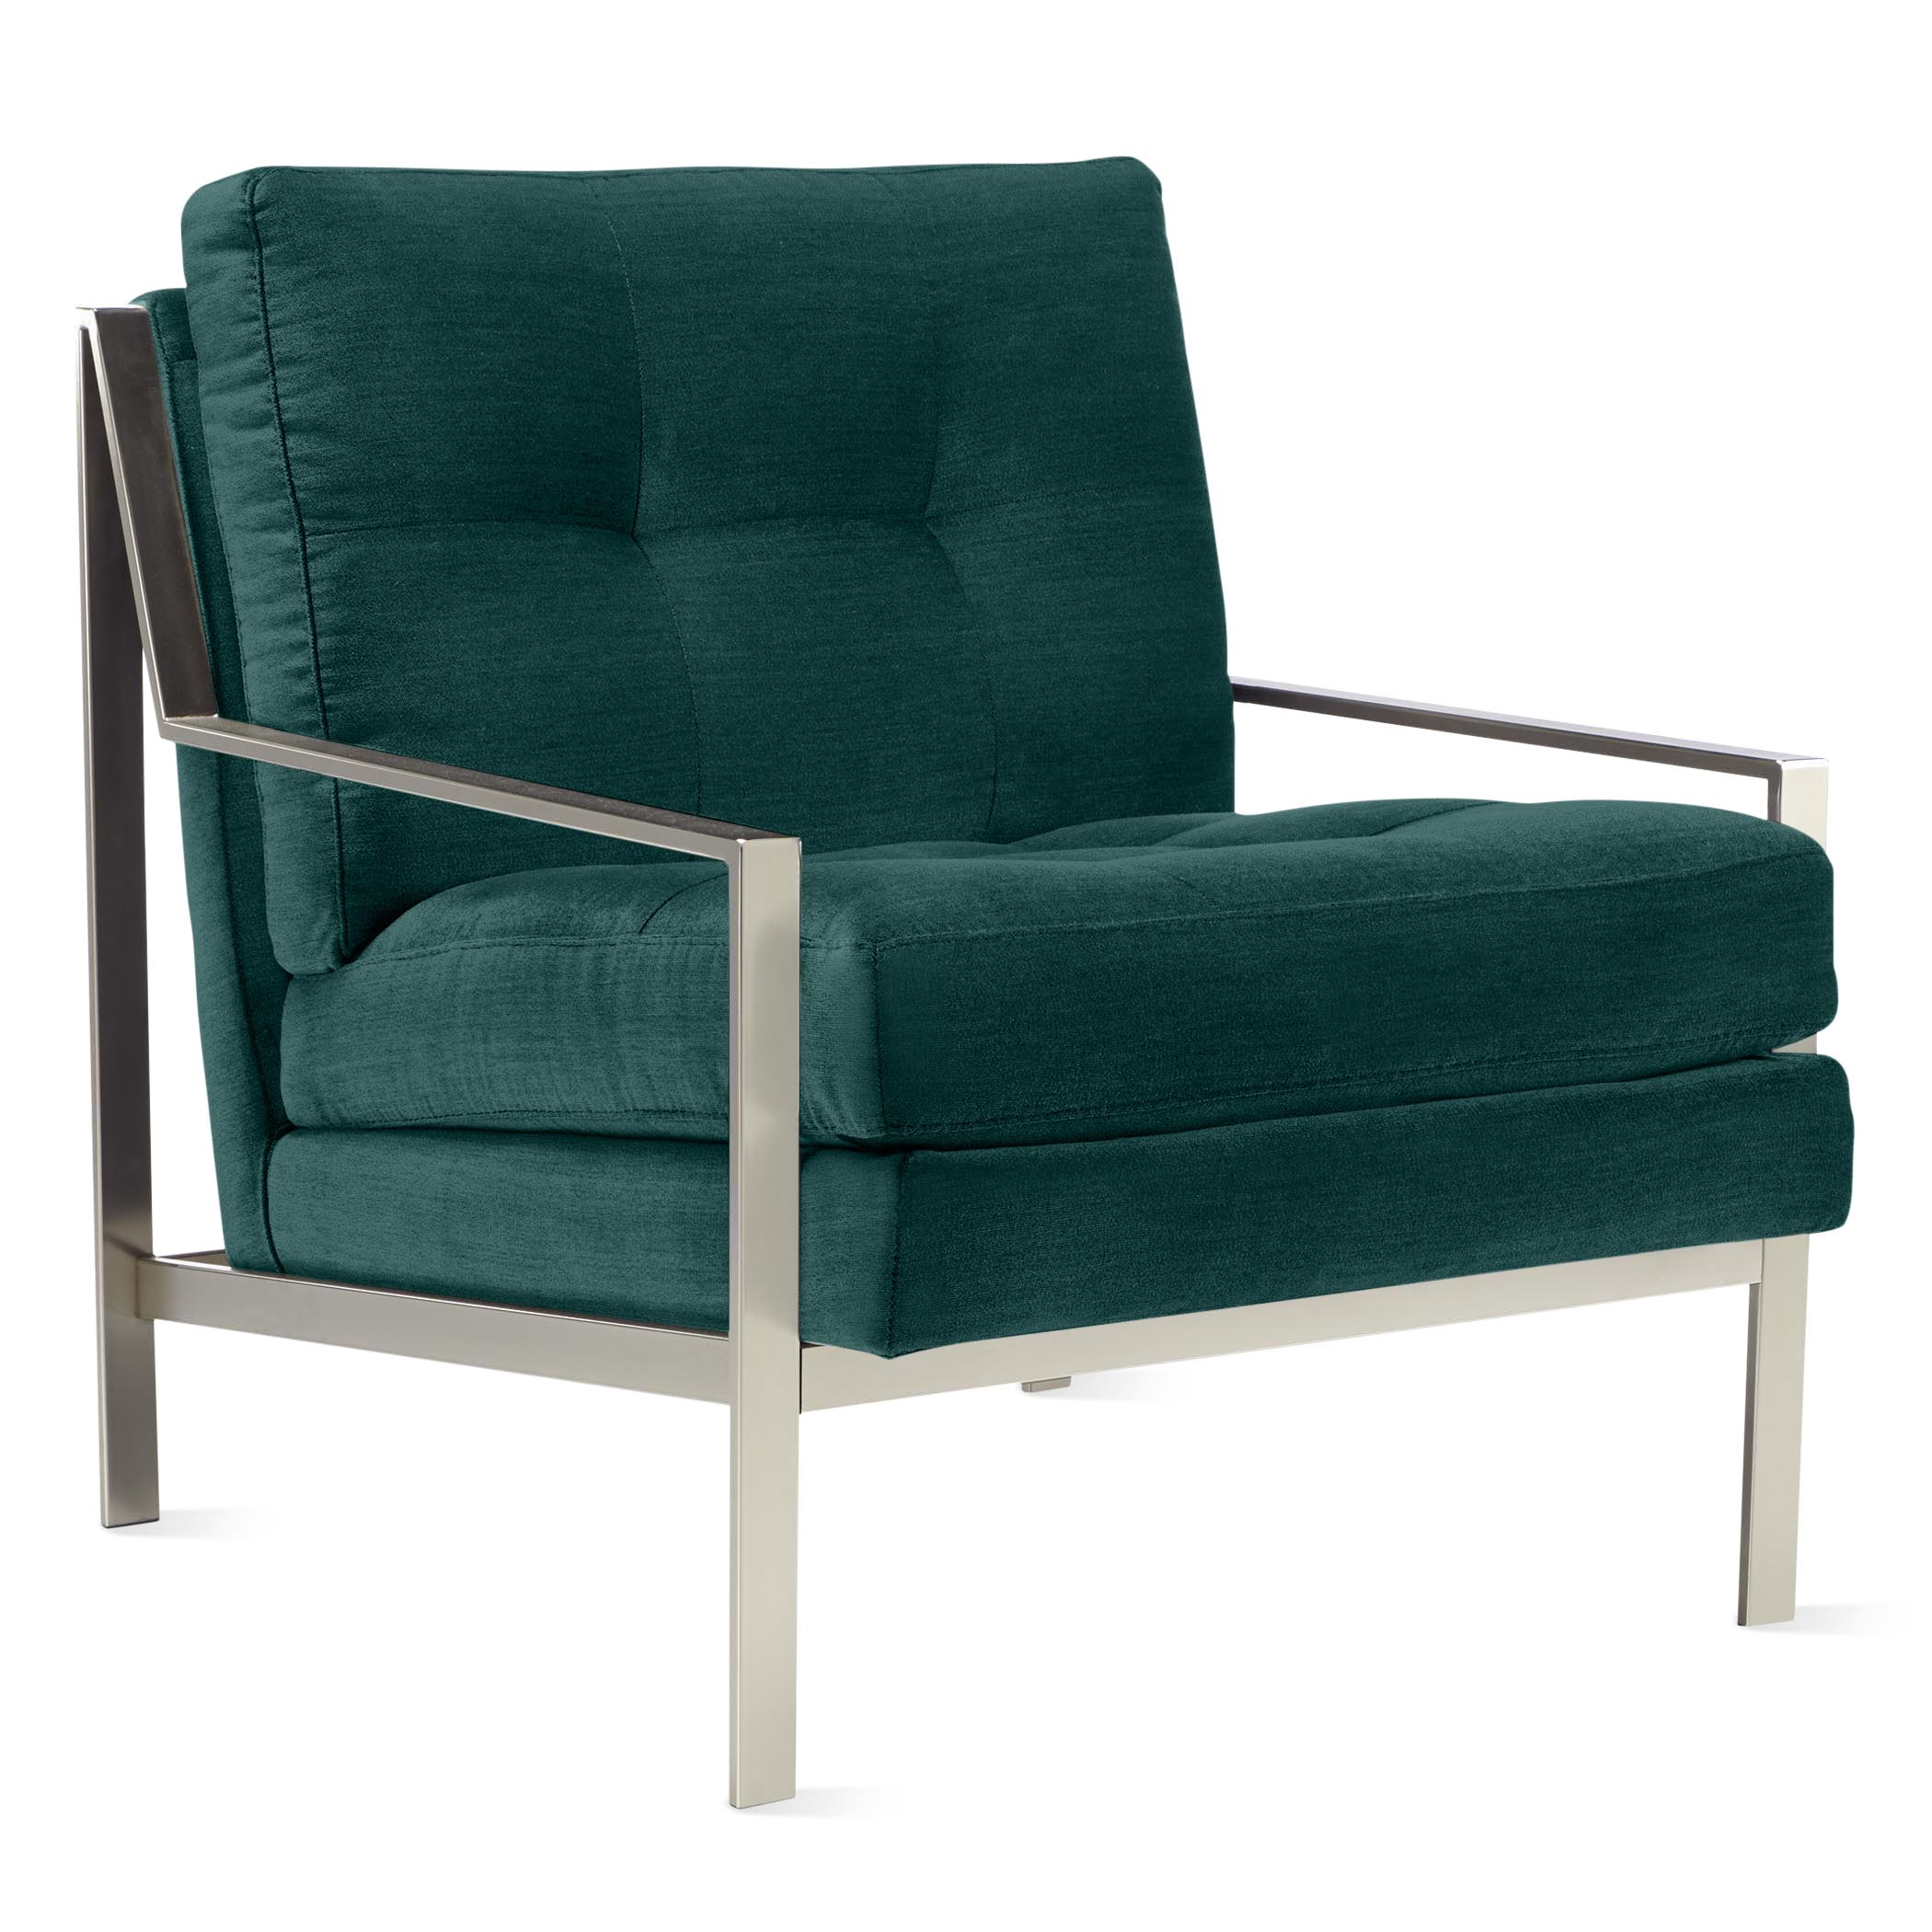 Axel Accent Chair - Brushed Nickel